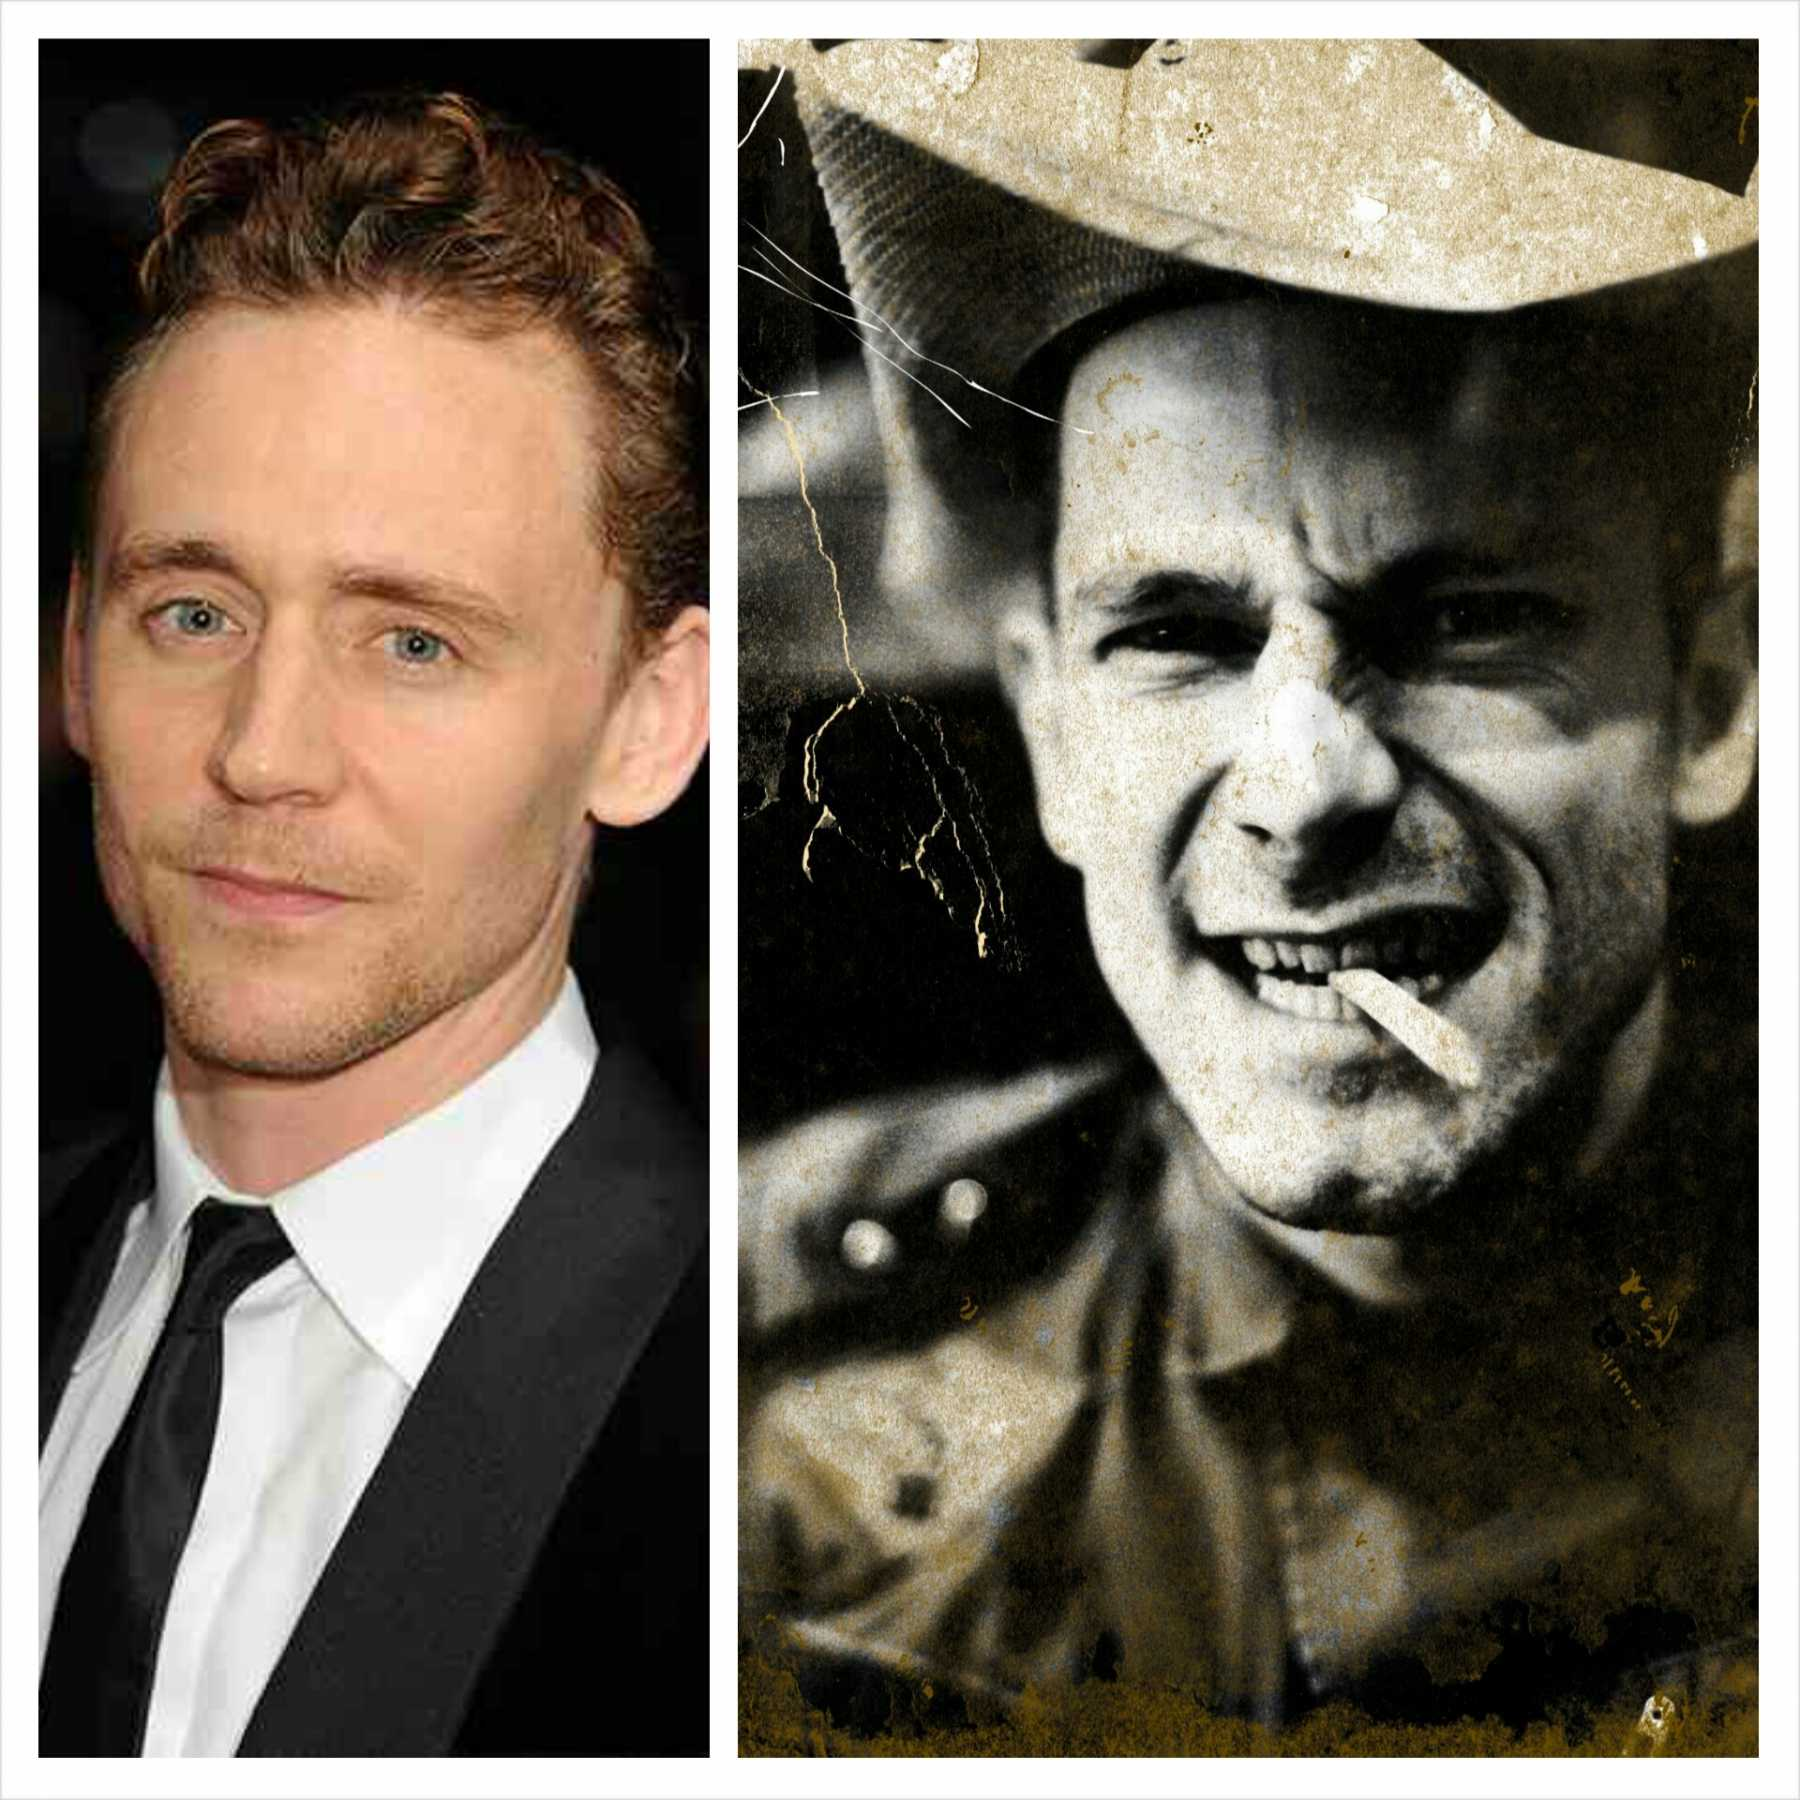 Hank Williams III Attacks Tom Hiddleston And I Saw The Light Casting; Says Role Should Have Gone To An American